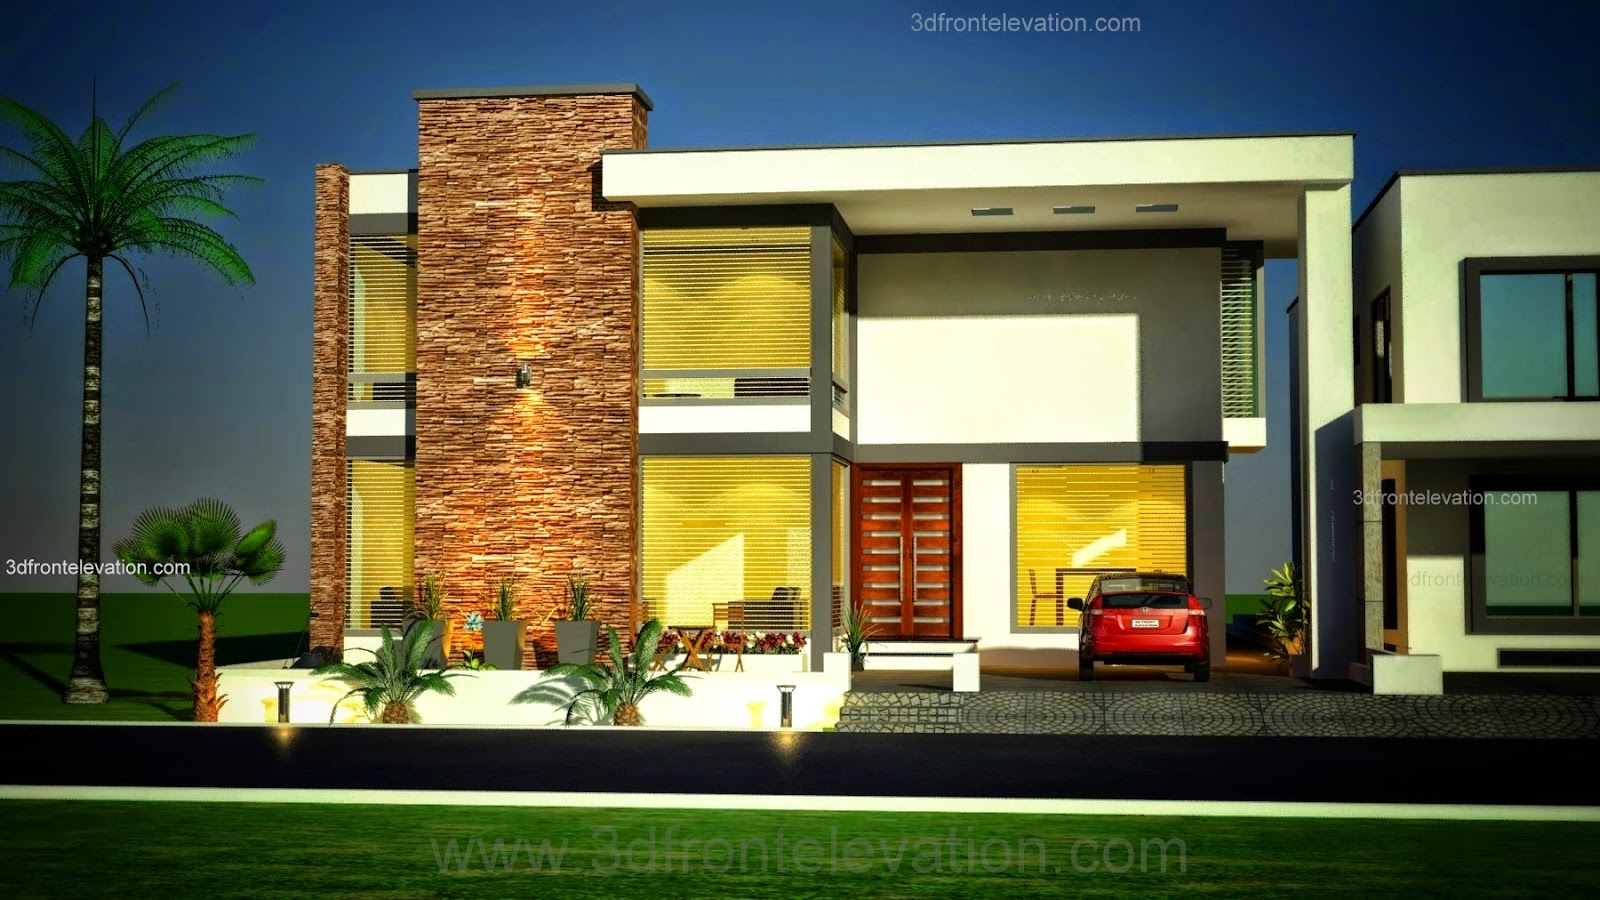 House design karachi - 1 Kanal Modern Simple Elegant House Design For Karachi Plot Size 50 X 90